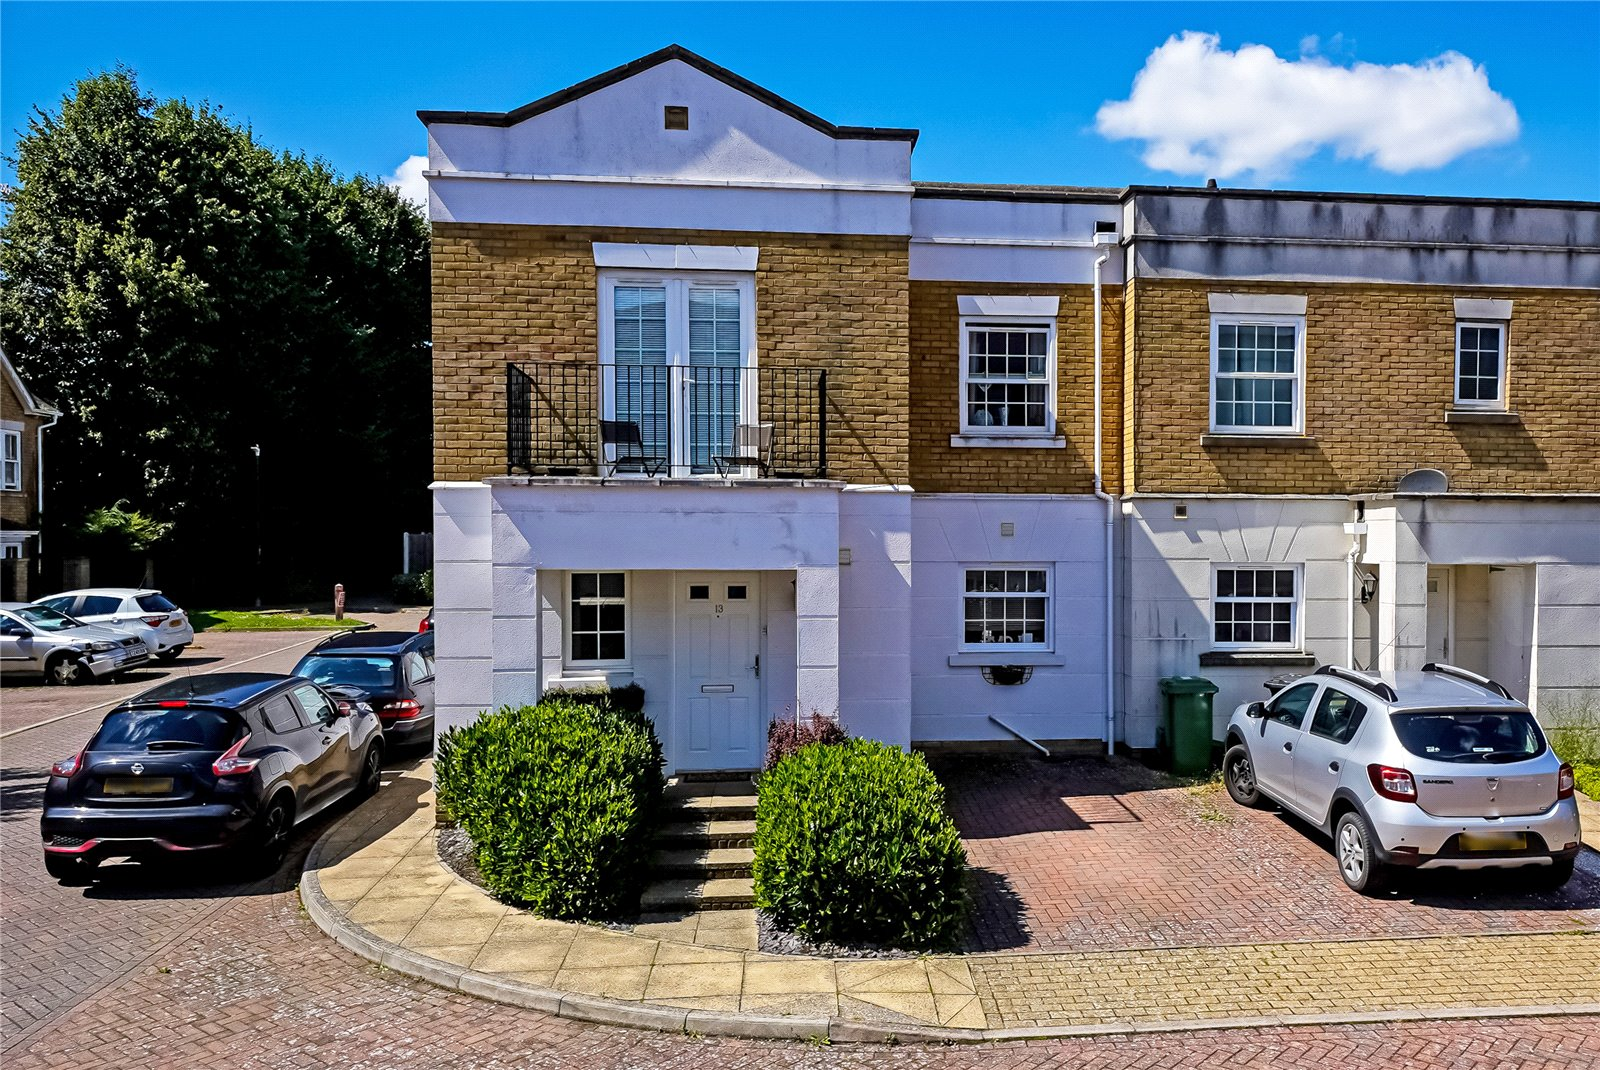 3 bed house for sale in Coriander Drive, Maidstone - Property Image 1